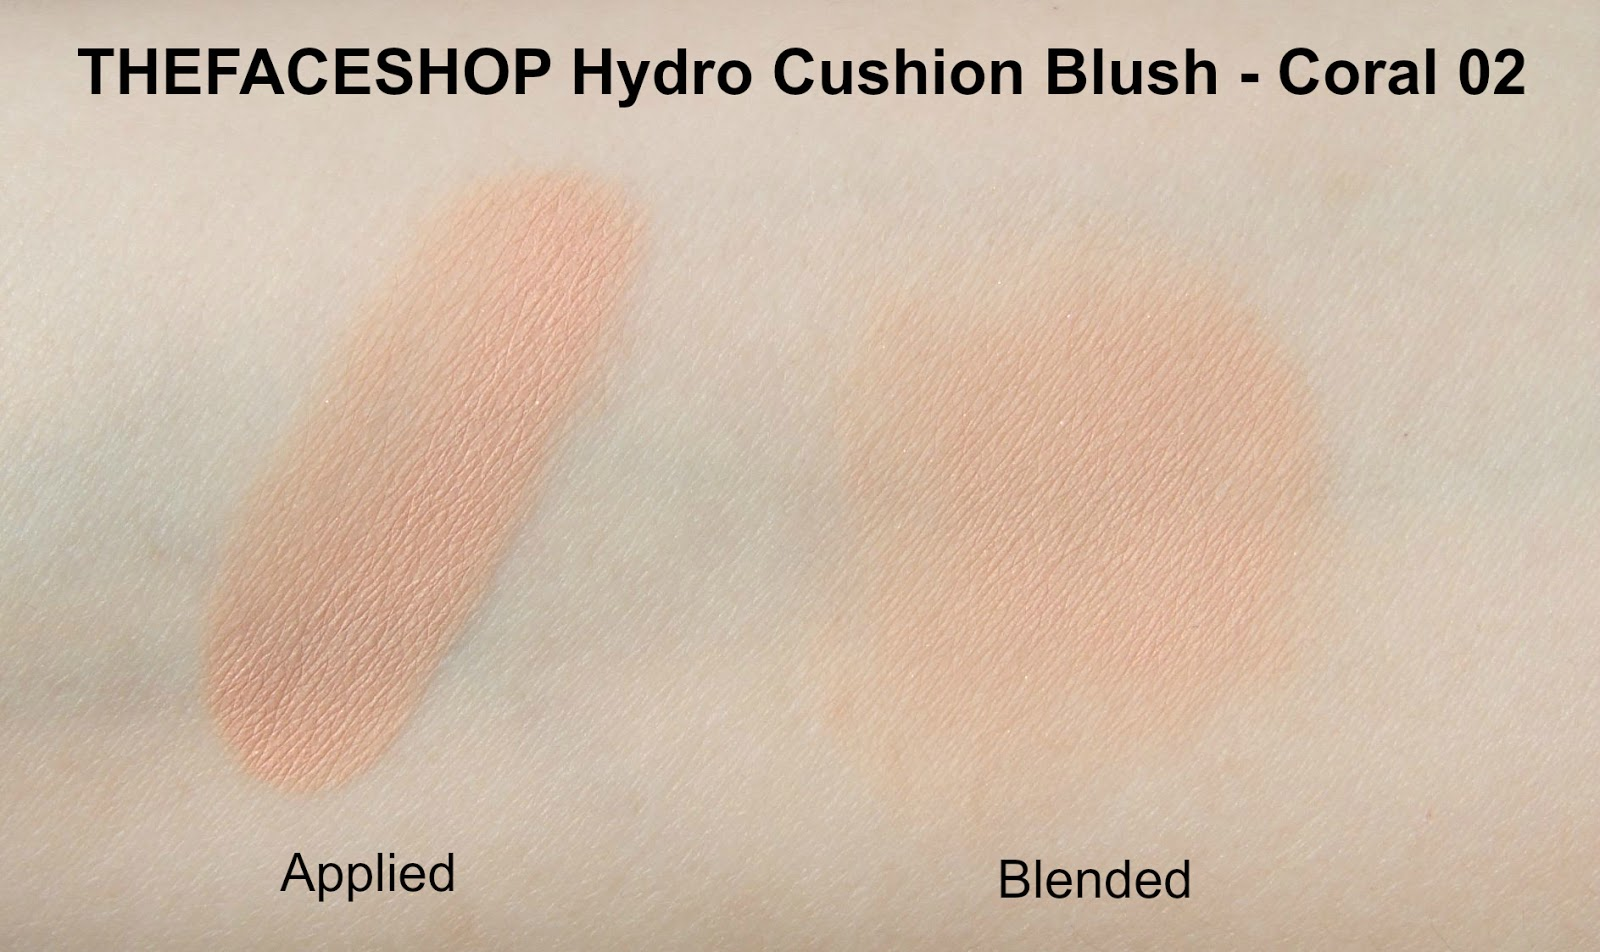 swatch blended